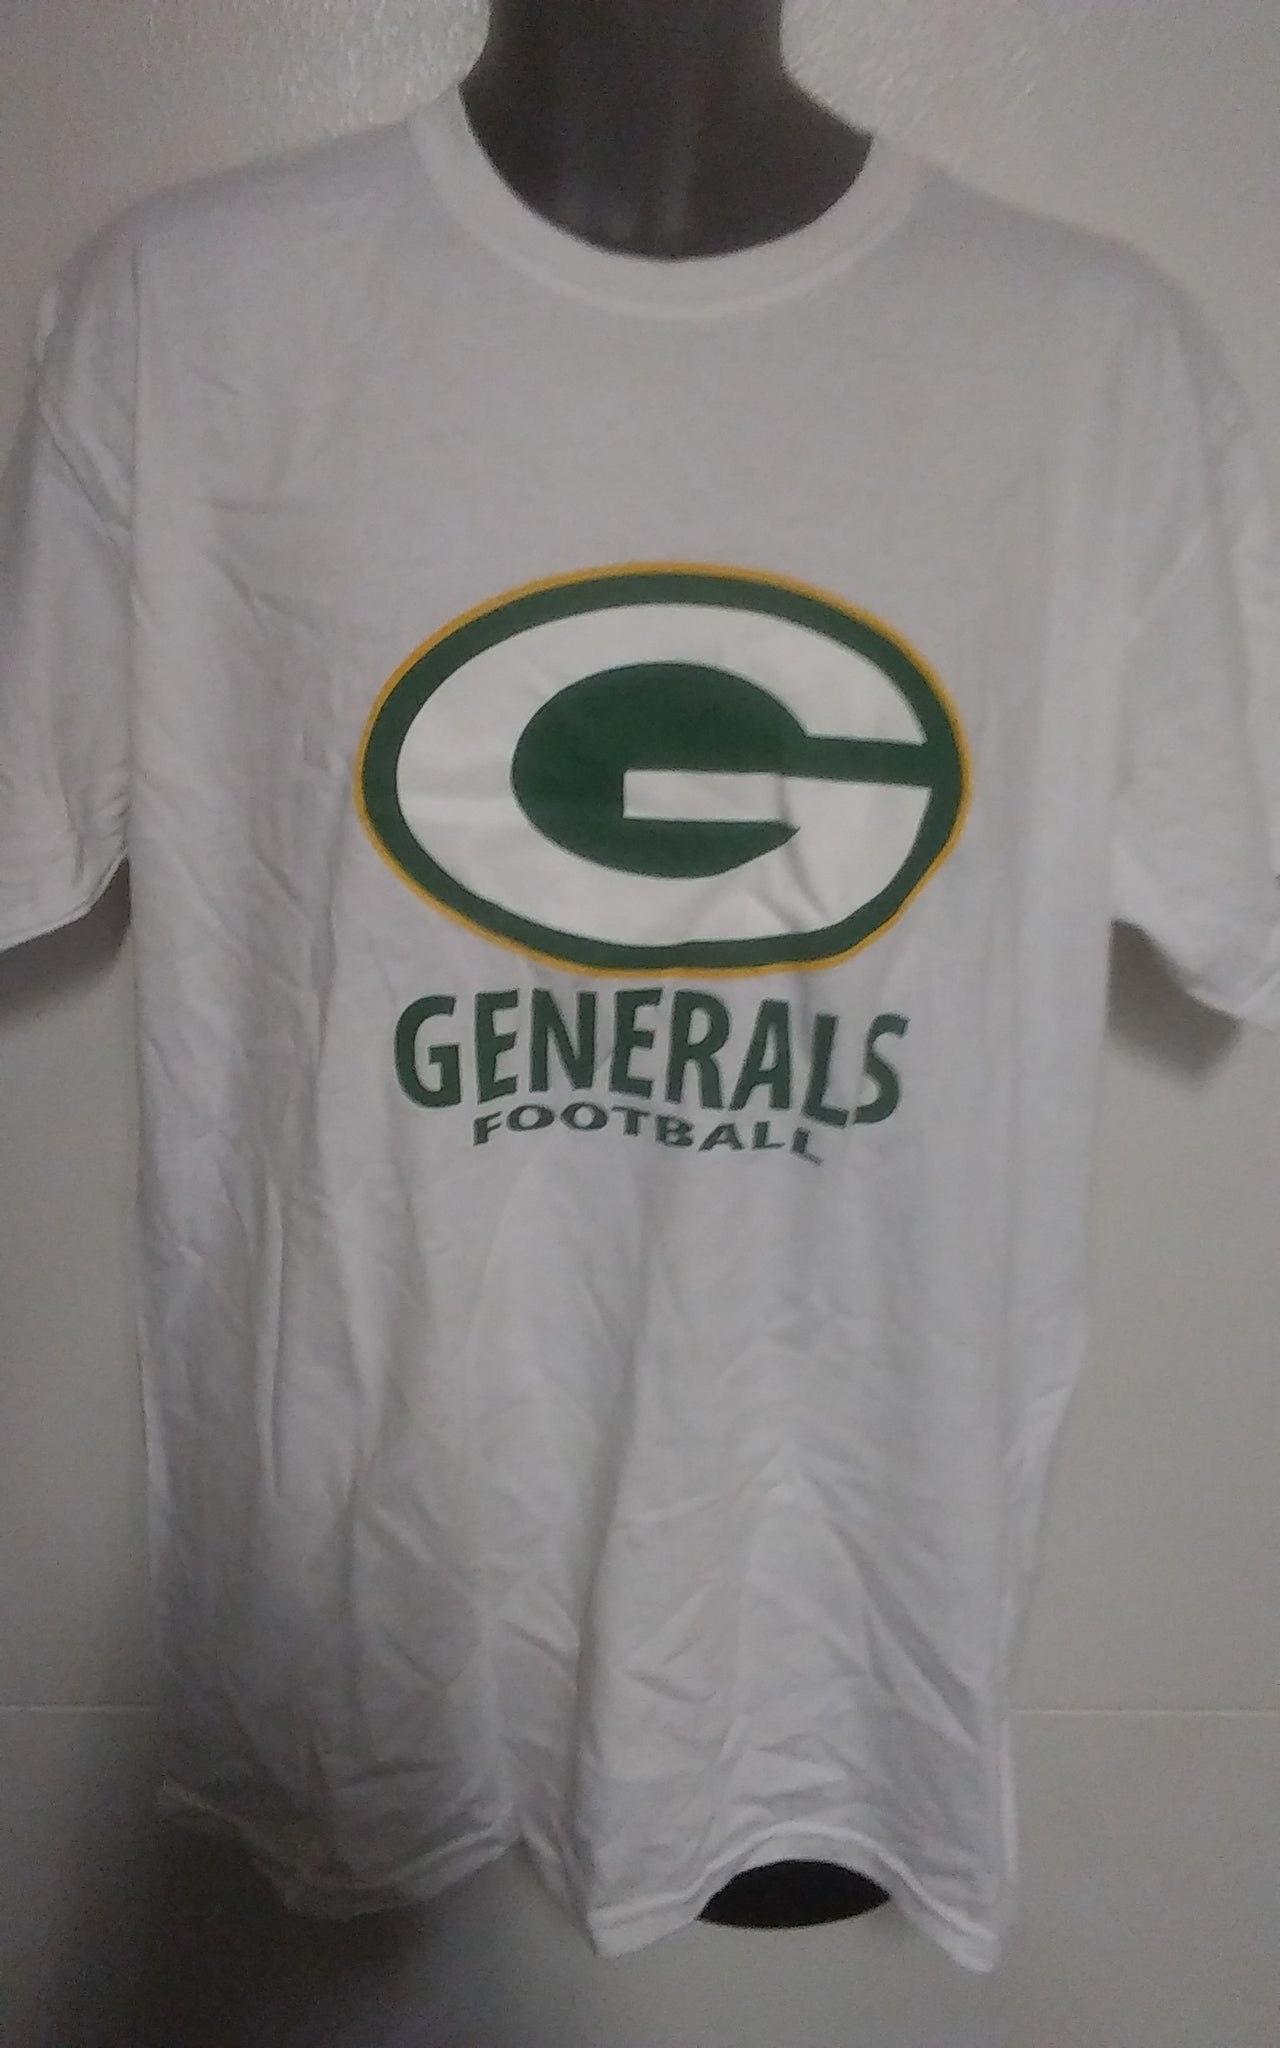 Generals Footballs Ultra Cotton T-shirt